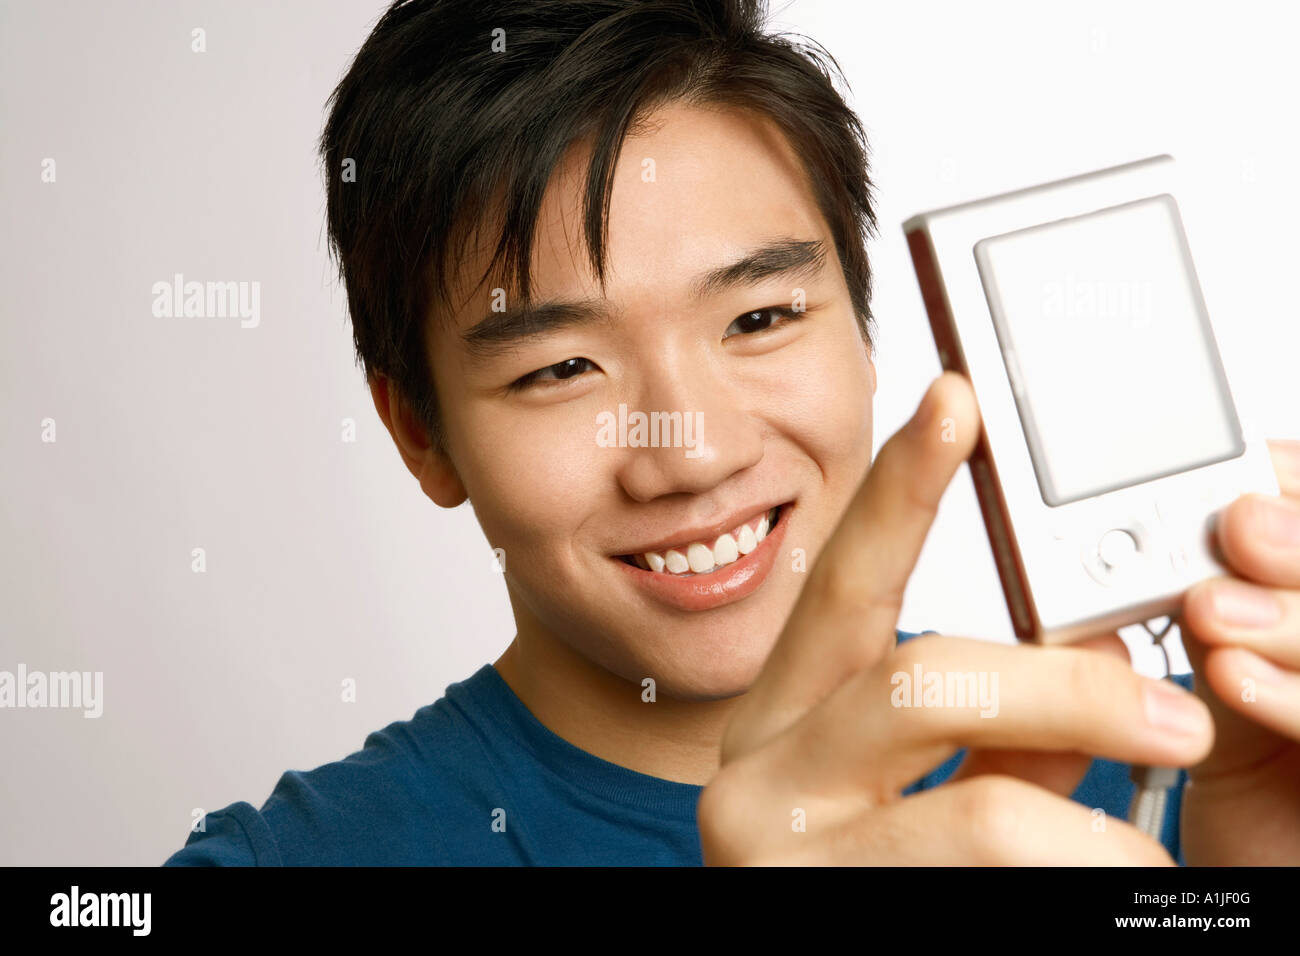 Close-up of a young man taking a picture of himself - Stock Image